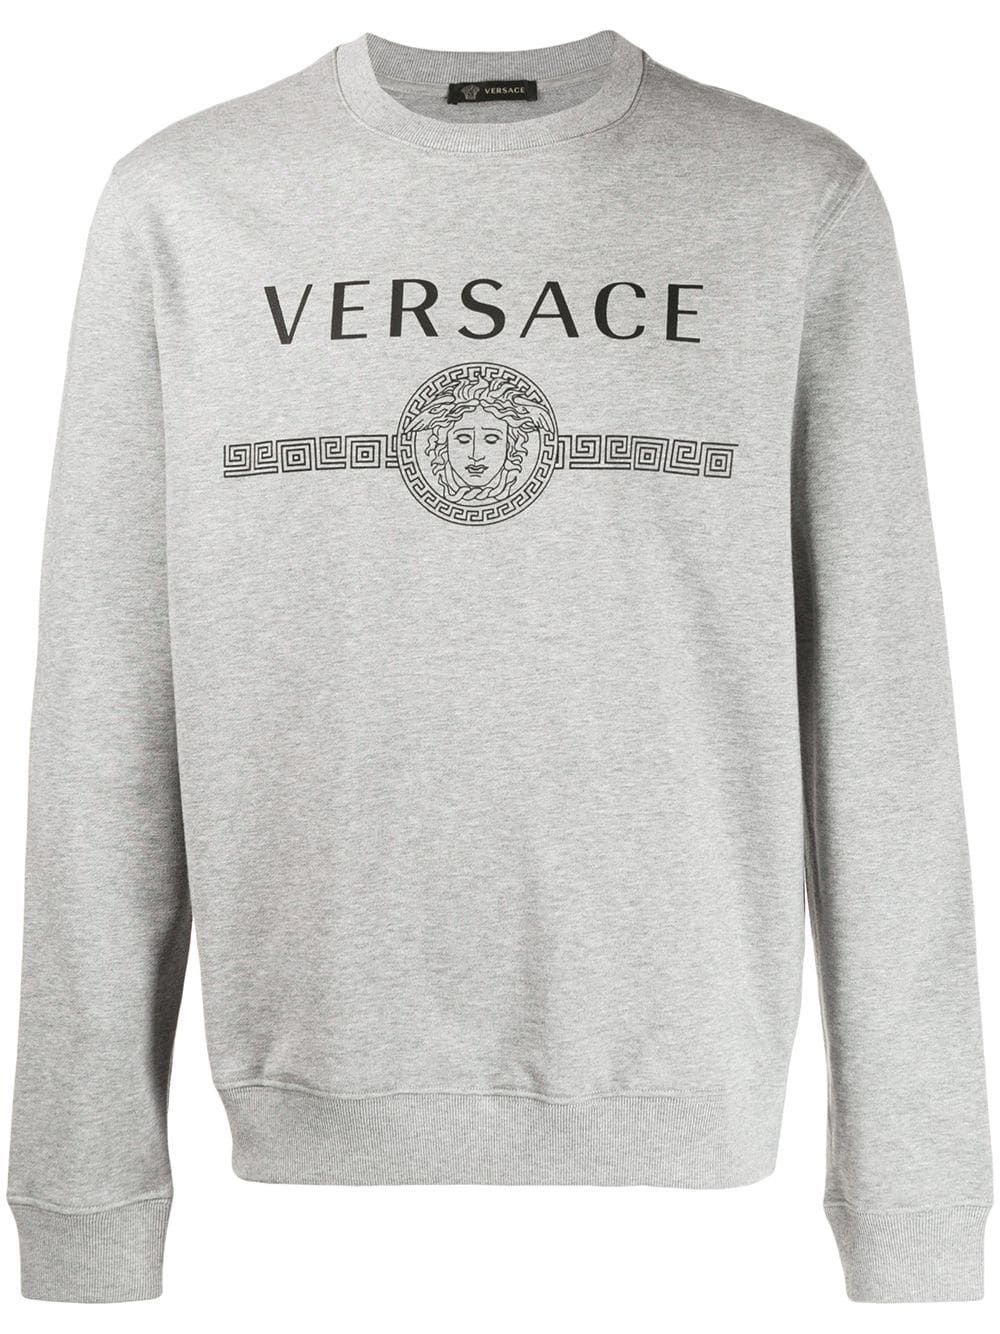 f0a36d4a Versace logo print sweatshirt - Grey in 2019 | Products | Versace ...